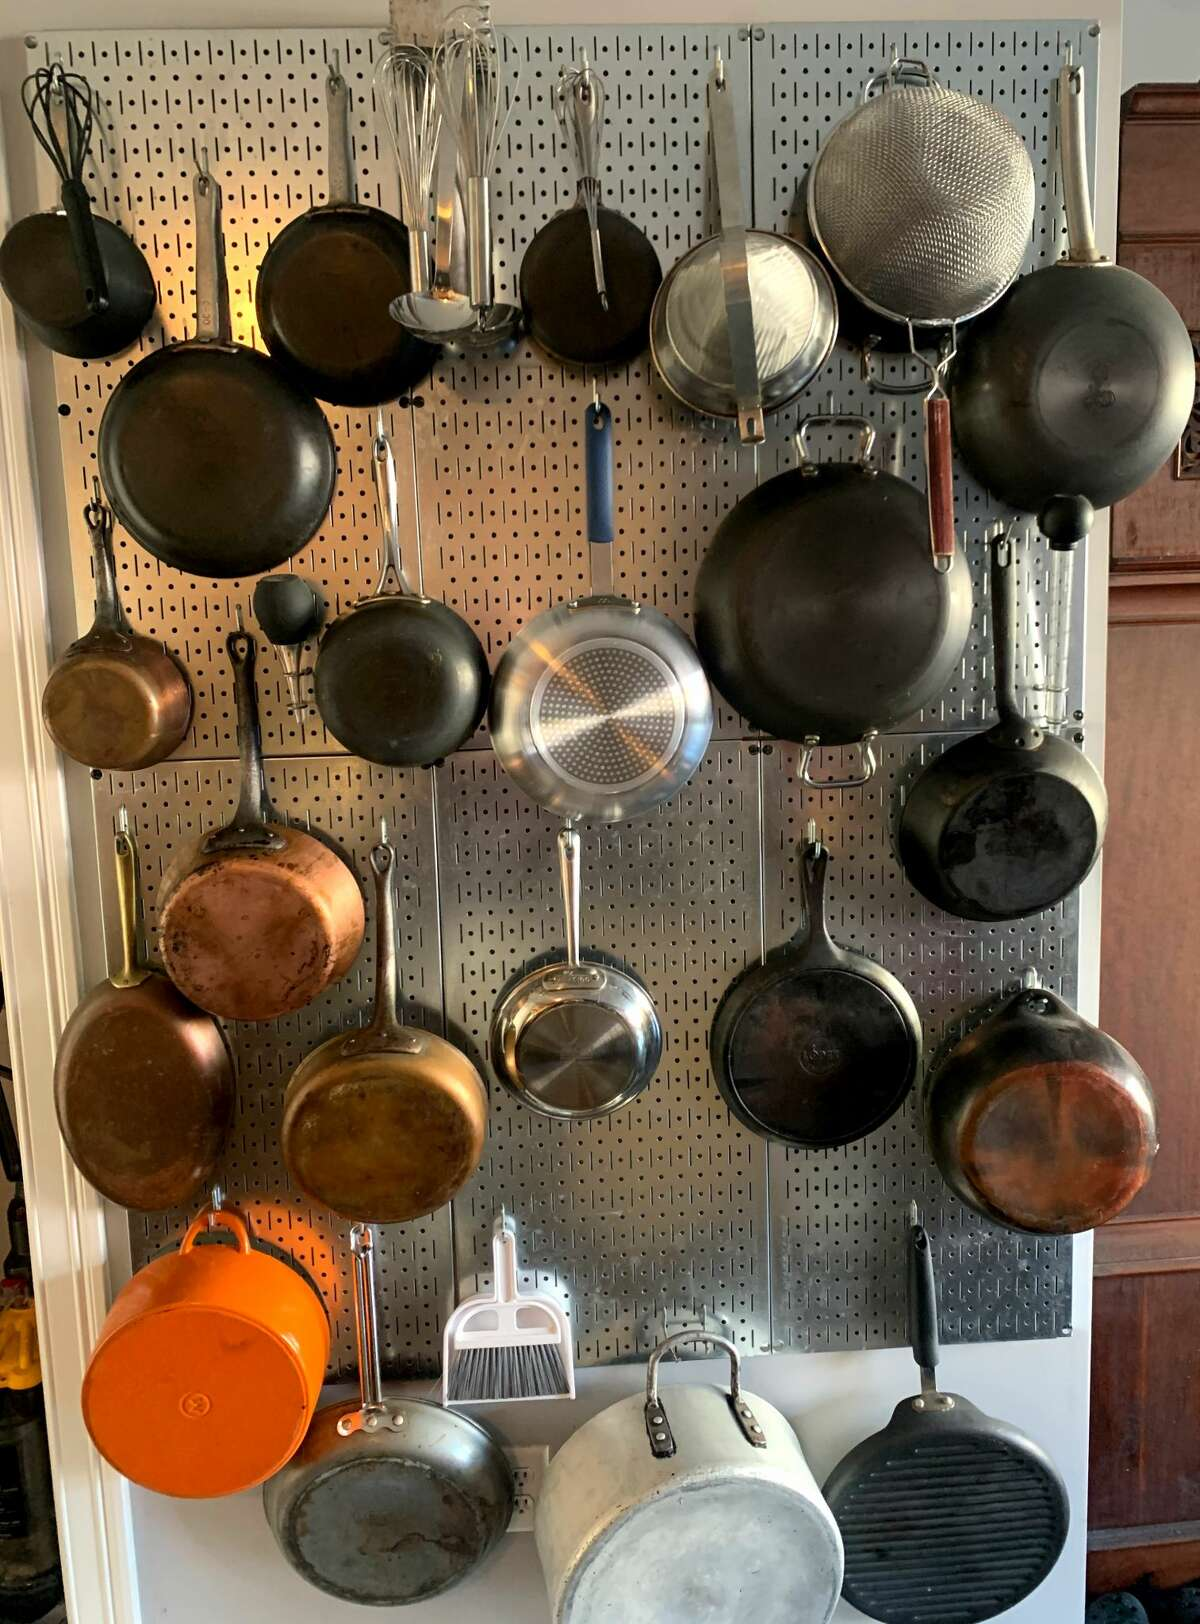 Times Union writer Steve Barnes wanted to have ready access to his pan collection at all times, so he built this pan wall in his Albany apartment.